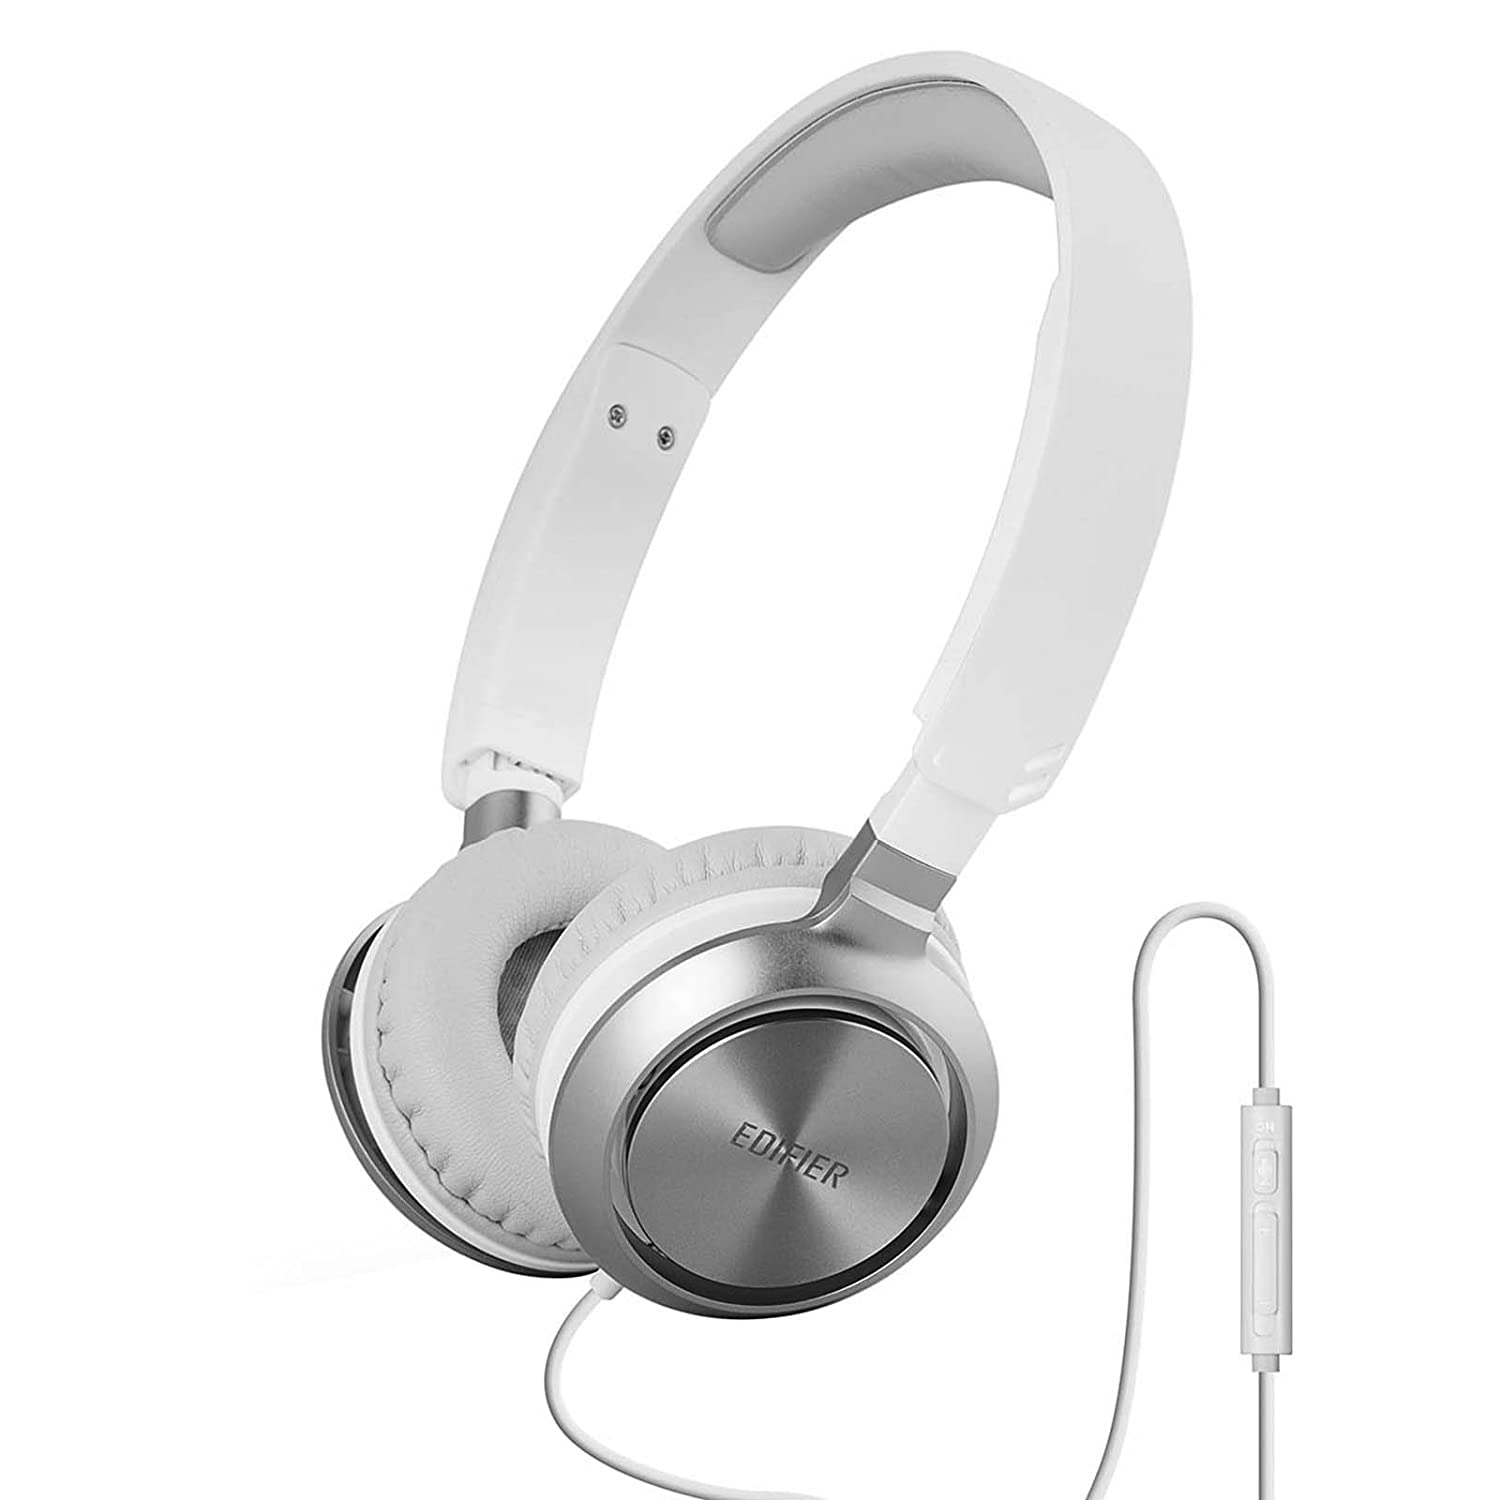 Edifier M710 On-Ear Headphones with Mic and Volume Control - White